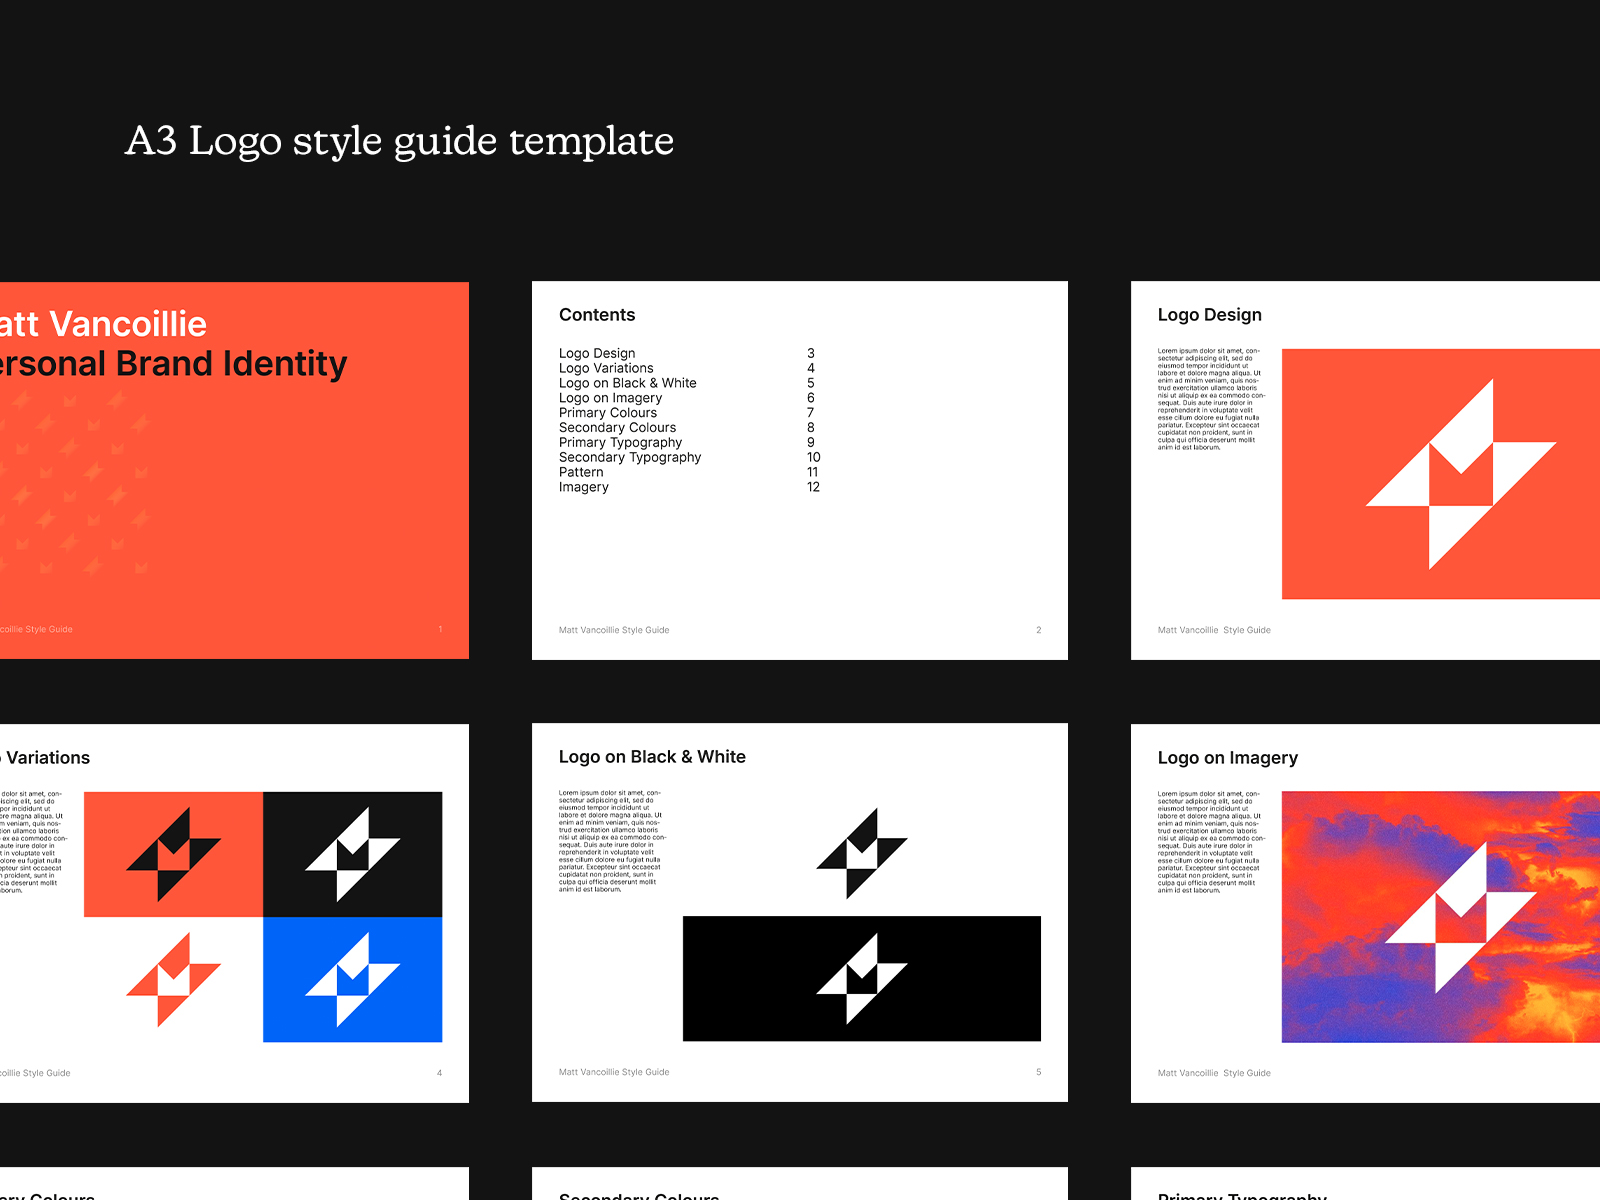 A3 Logo Style Guide Template